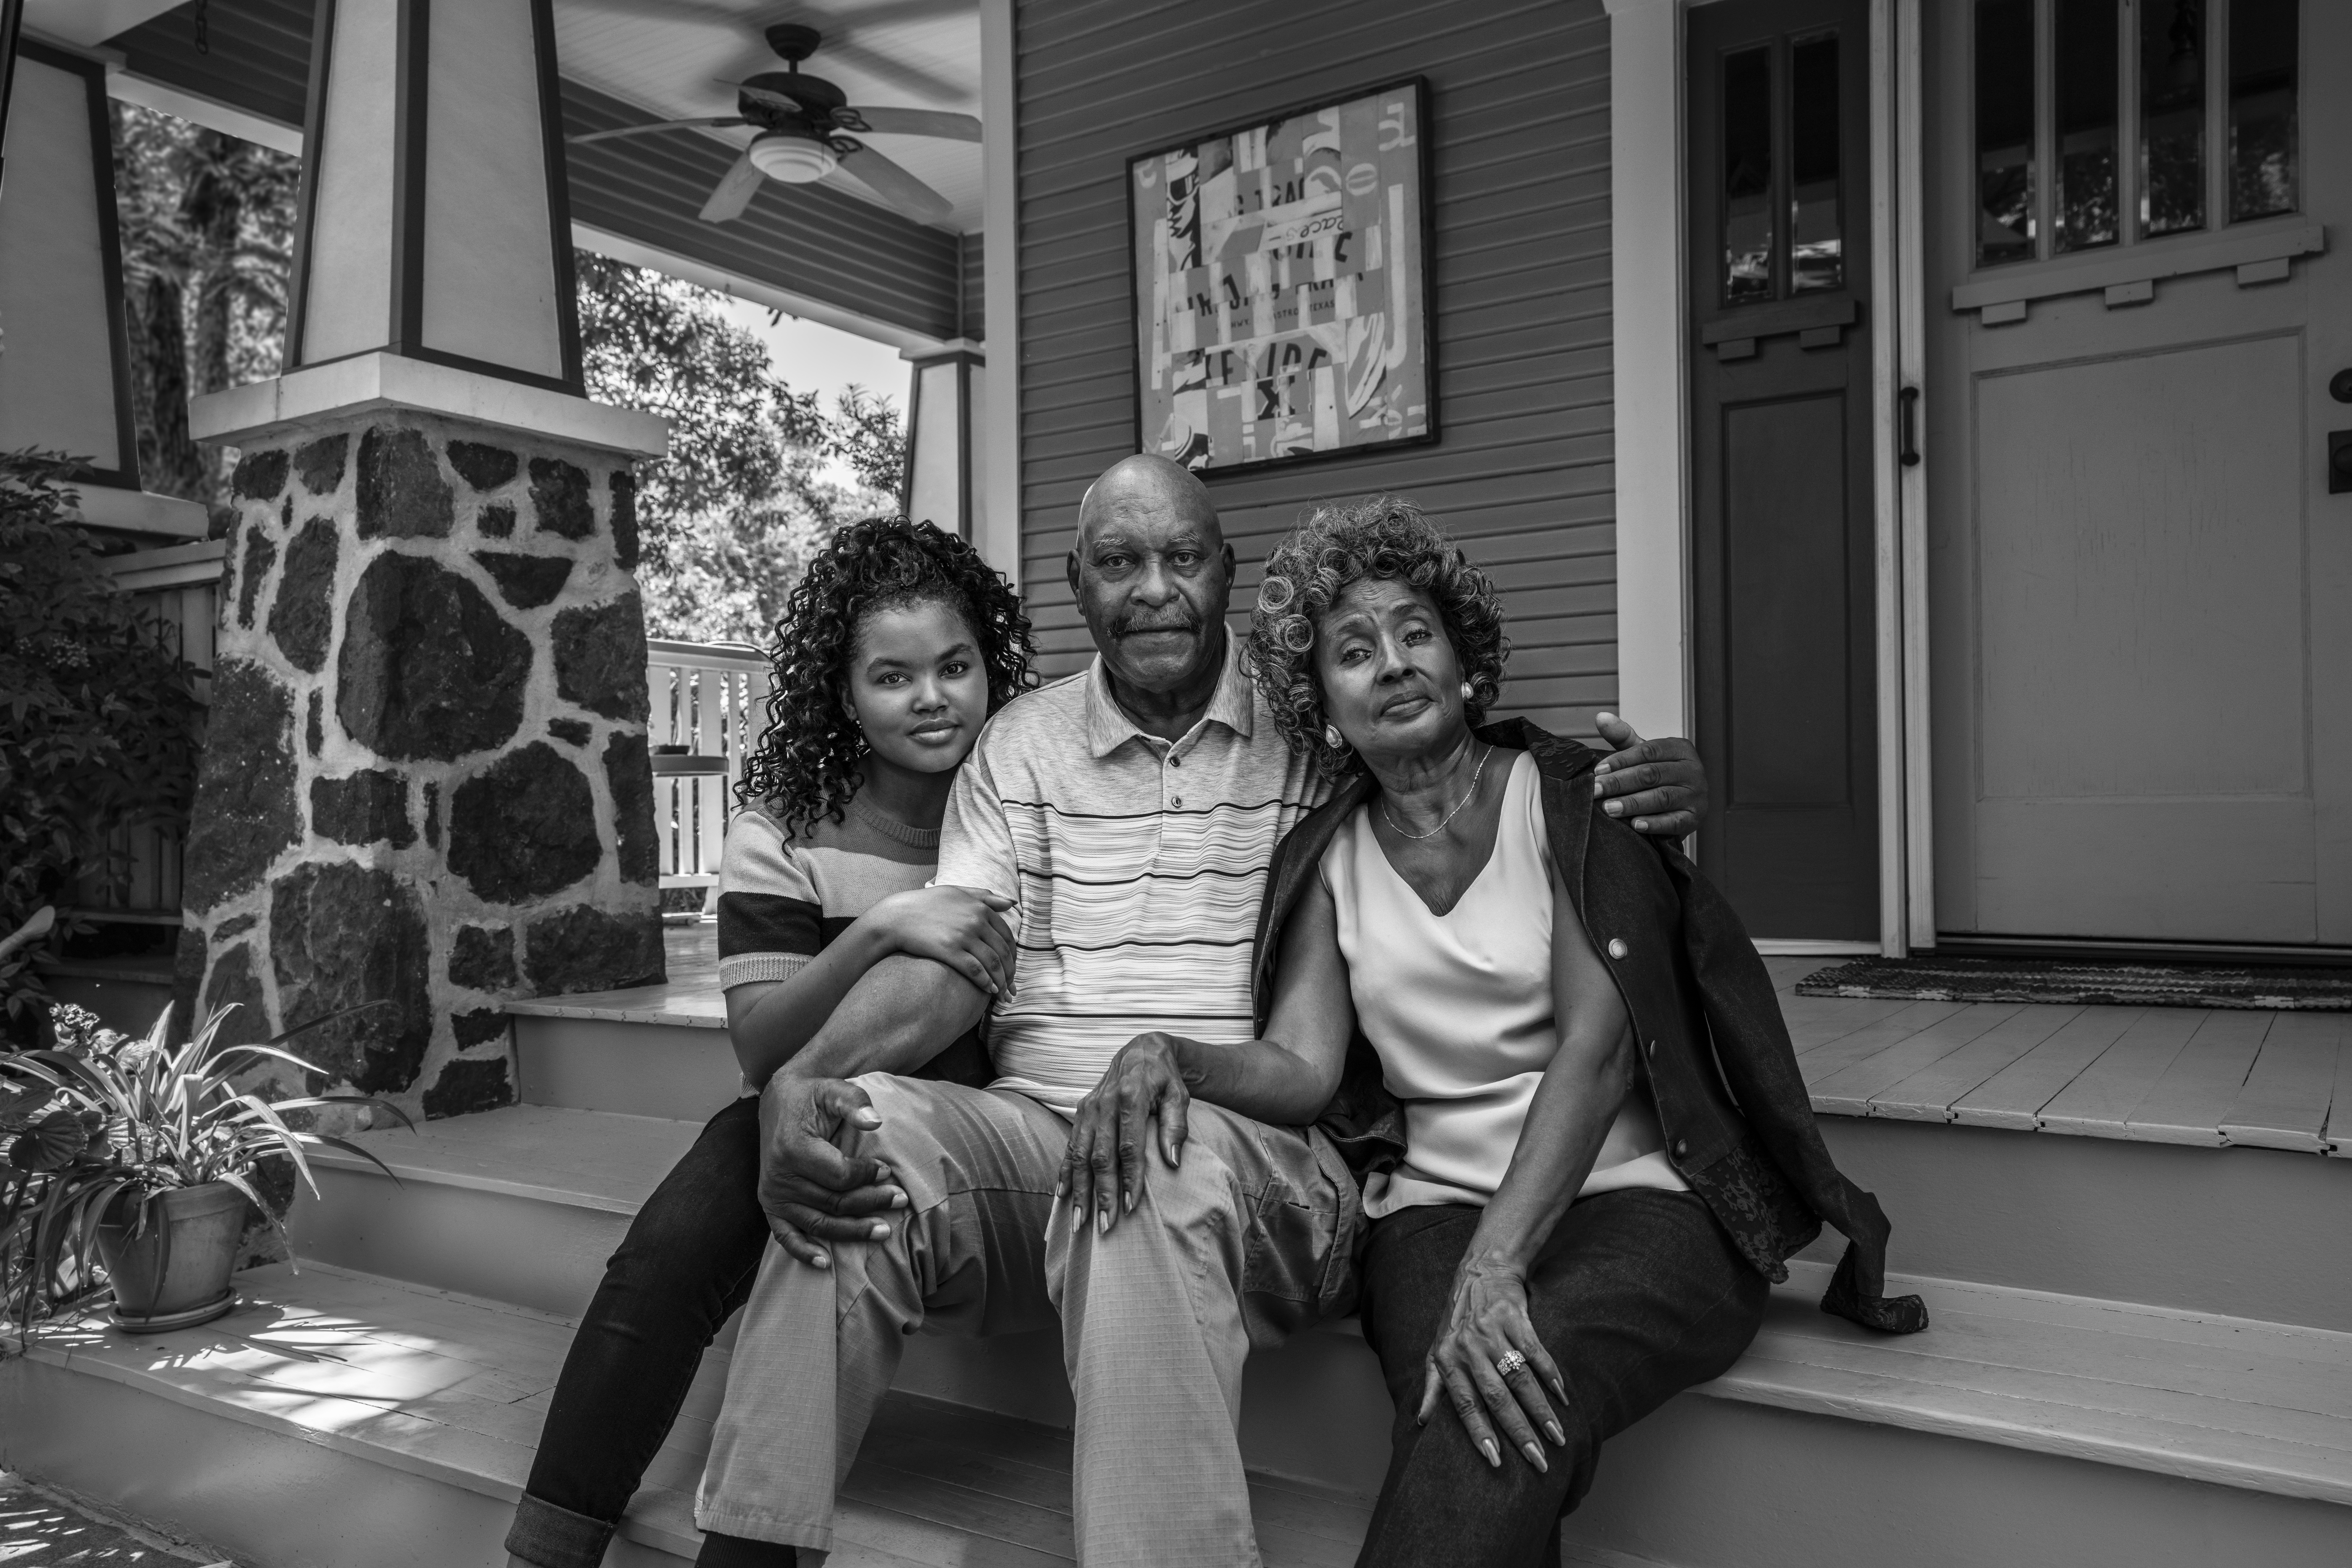 Two elders and a young woman sitting on the steps in front of a house.